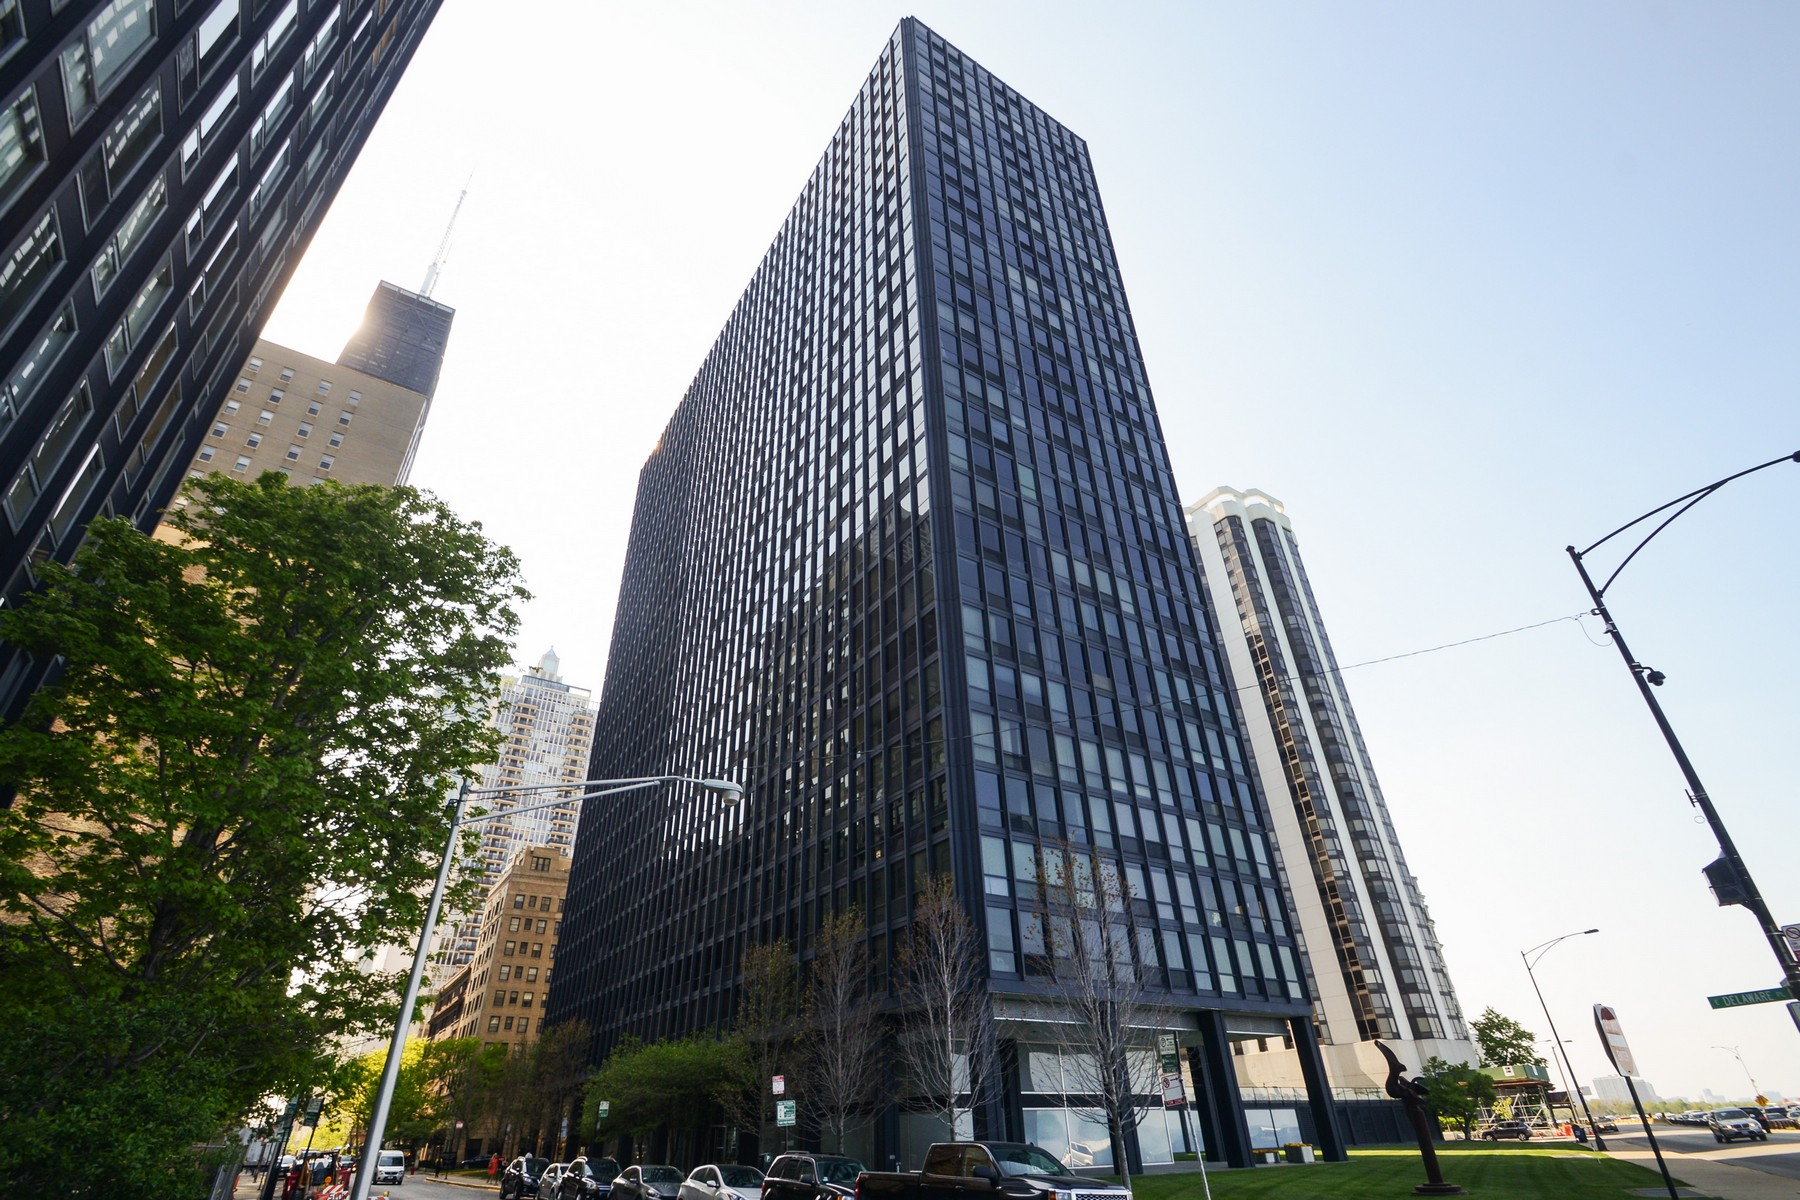 Single Family Home for Sale at Amazing High Floor Unit in Miles Van Der Rohe Building 900 N Lake Shore Drive Unit 2212 Near North Side, Chicago, Illinois, 60611 United States